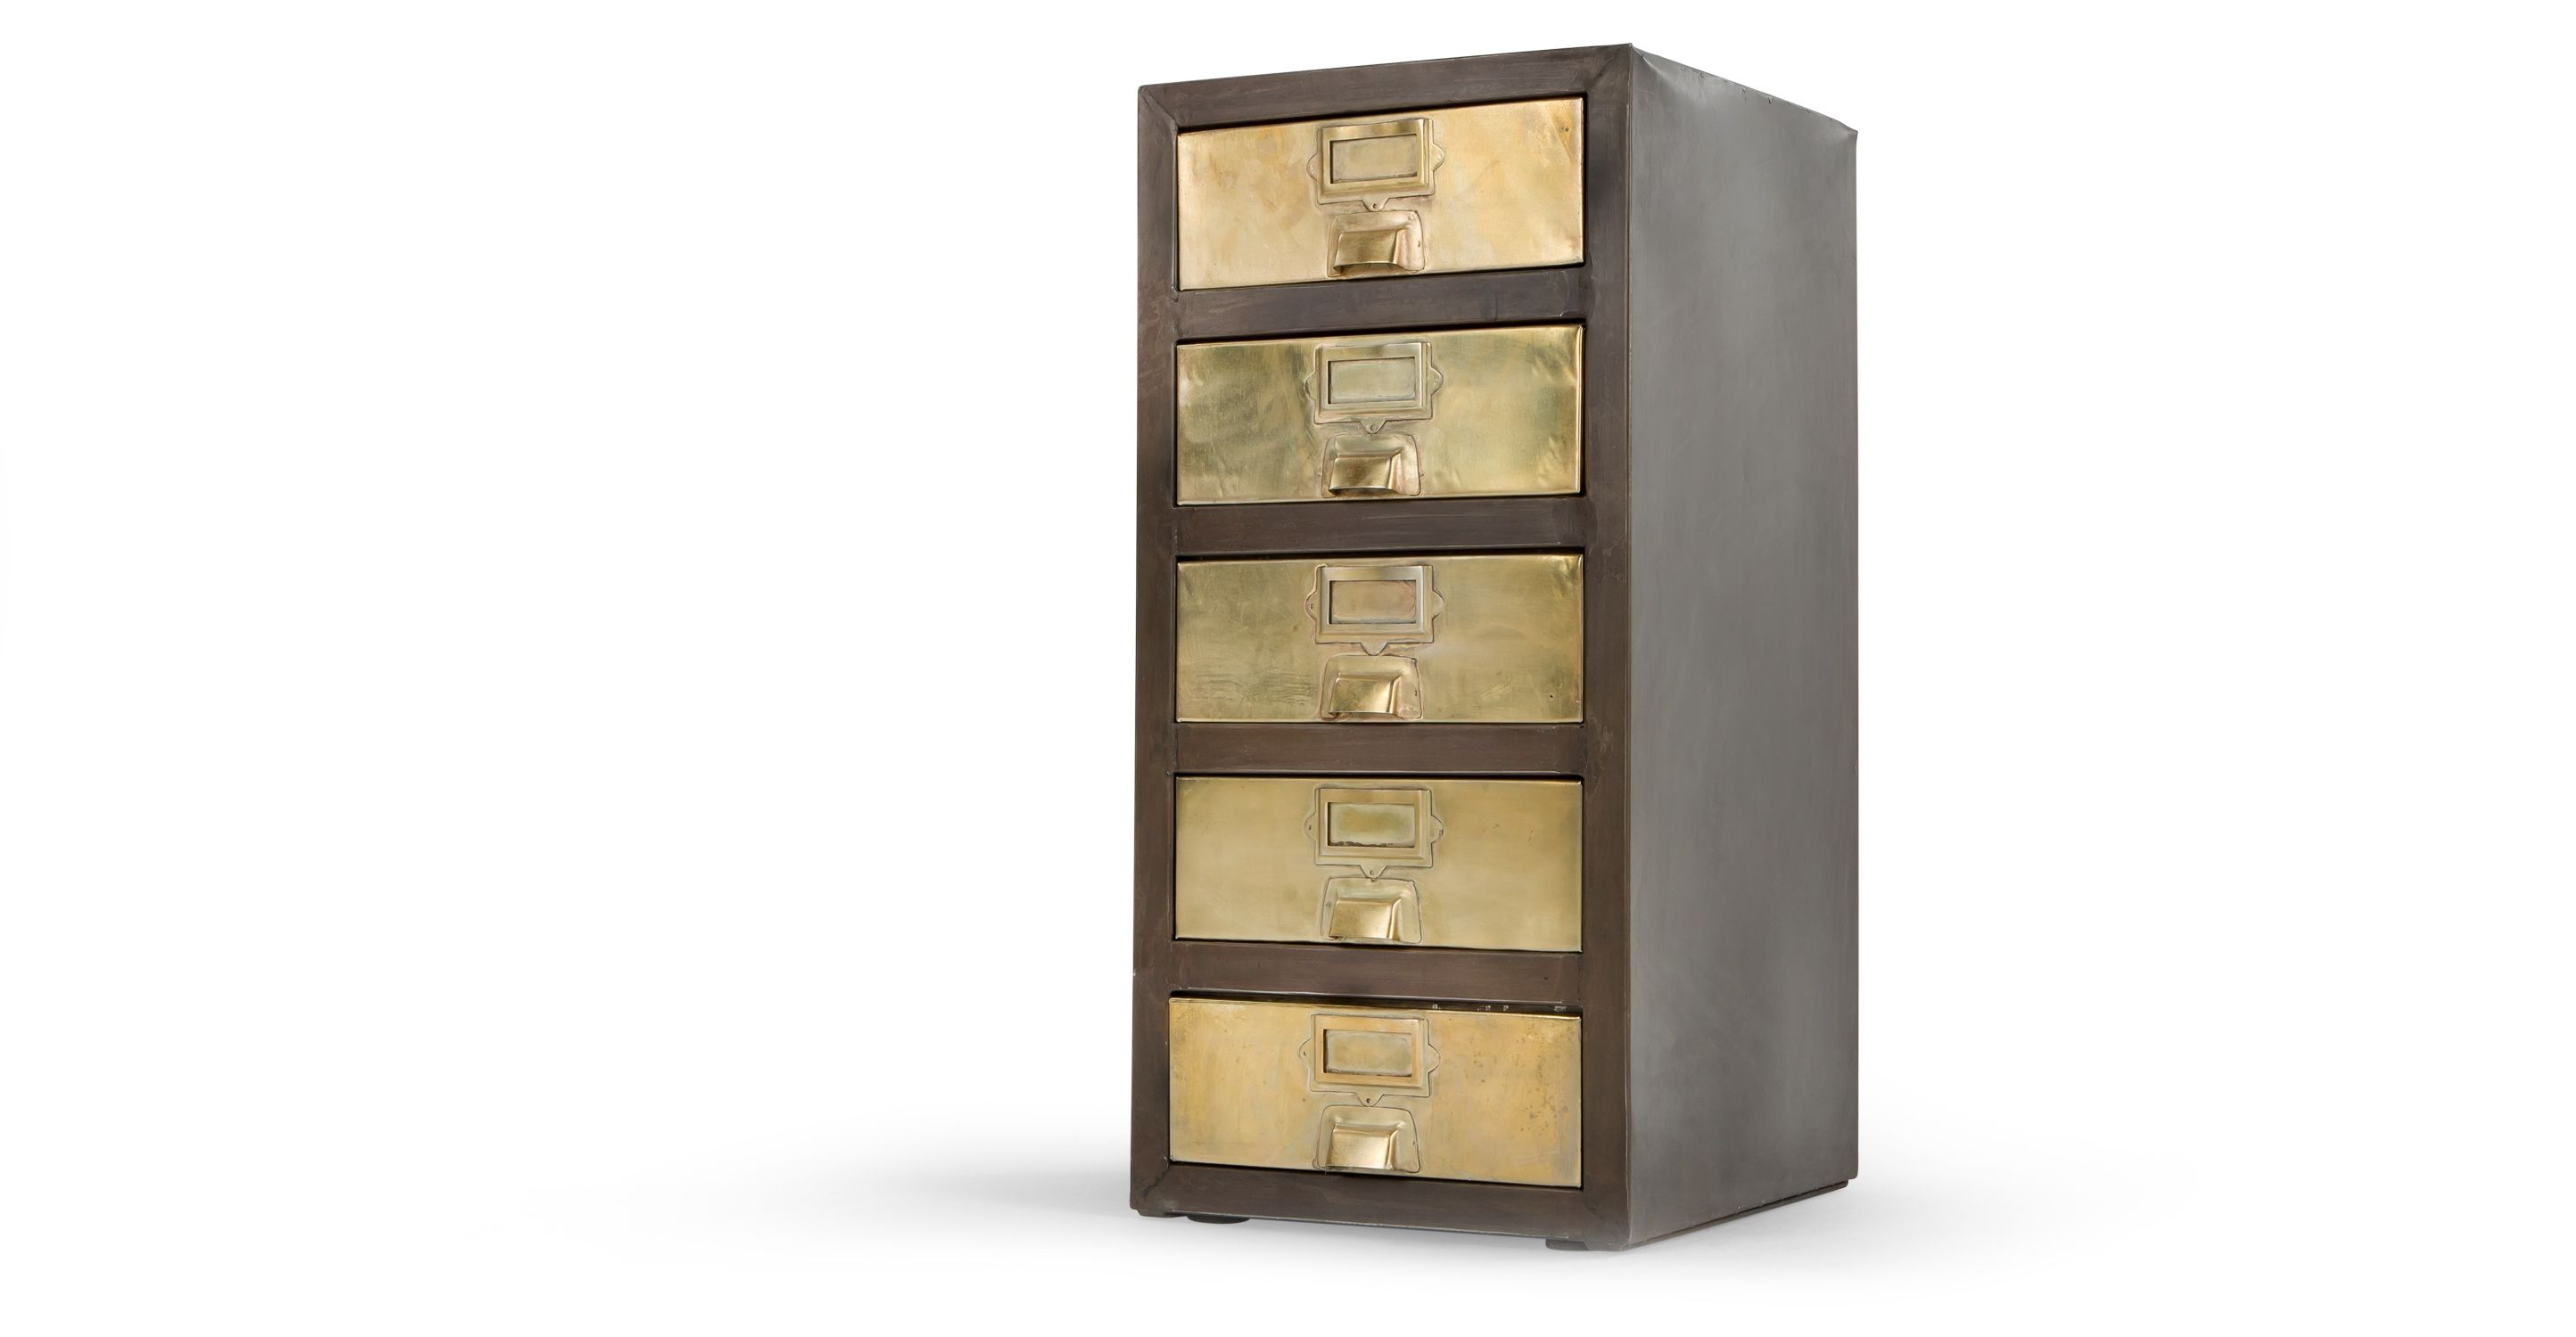 Stow Small Storage Unit, Vintage Brass